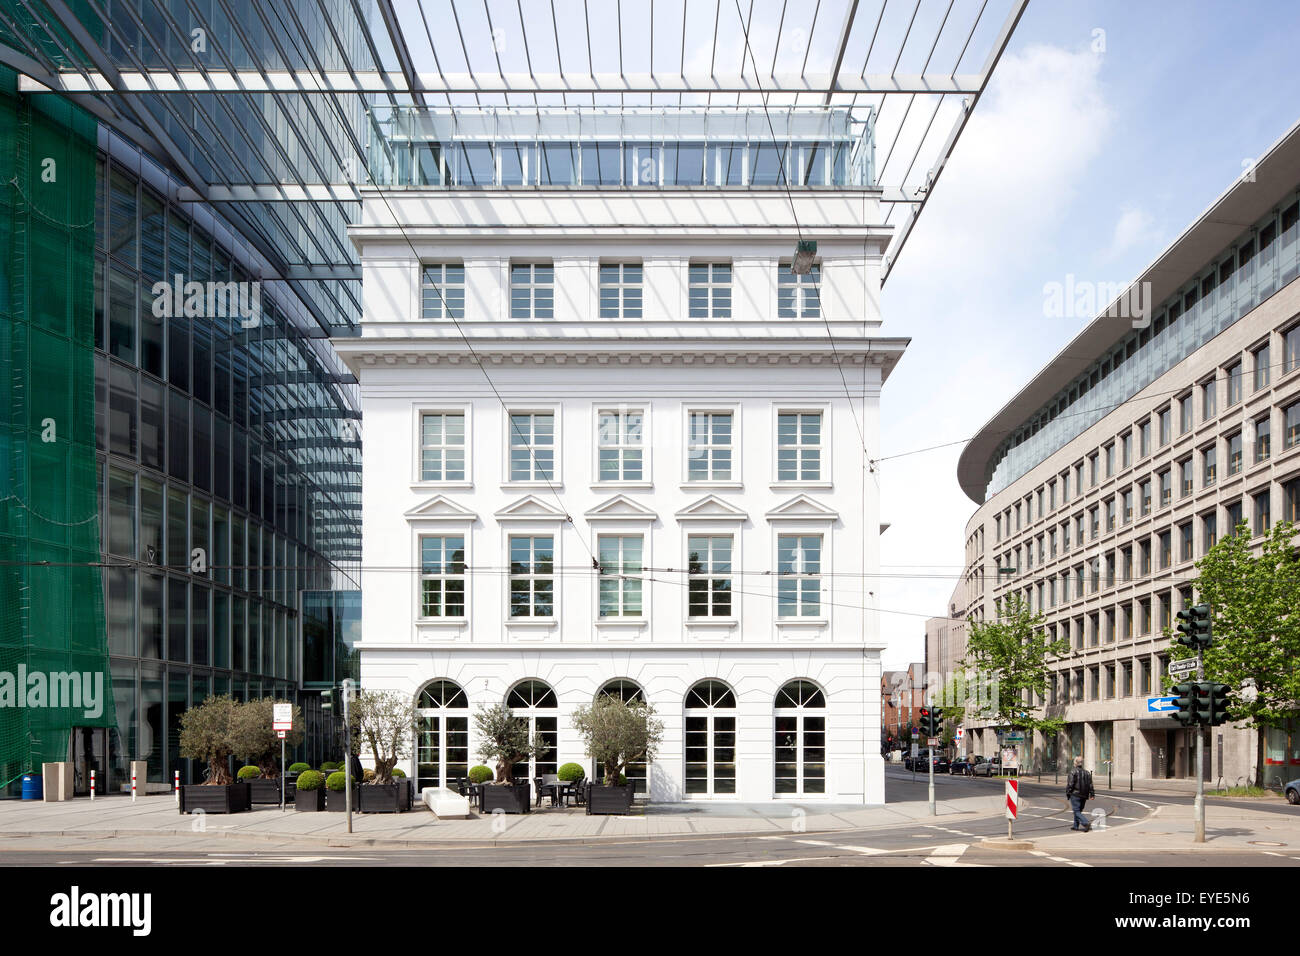 GAP 15 office tower, Düsseldorf, Rhineland, North Rhine-Westphalia, Germany - Stock Image